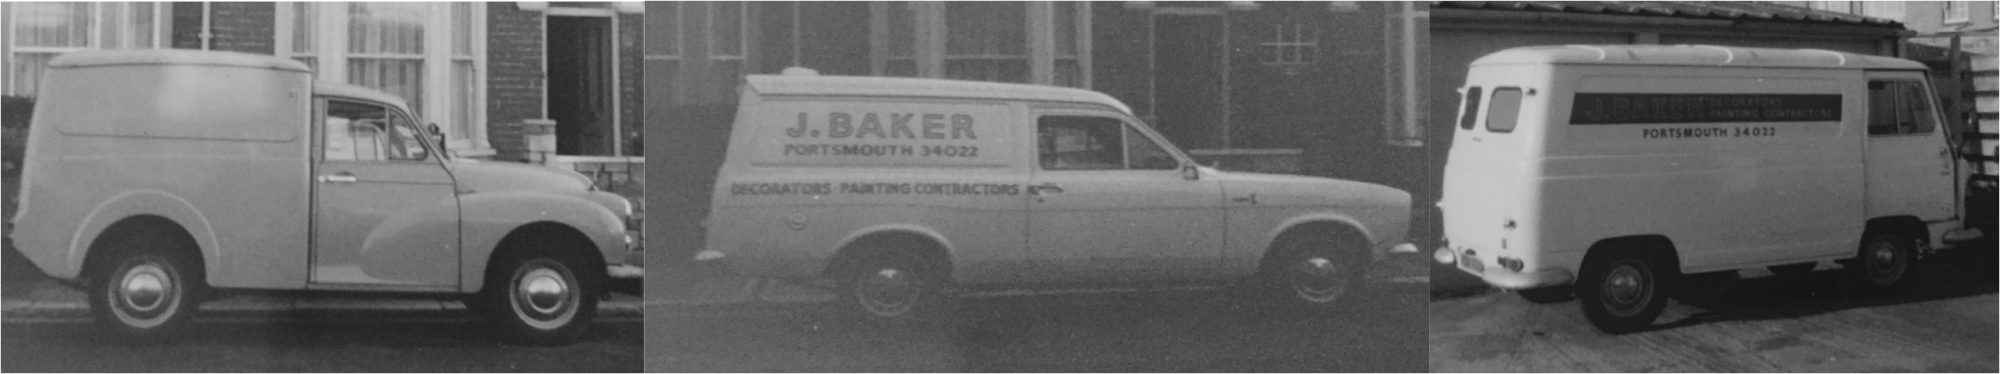 Old vans from Baker Southern Ltd Portsmouth Based specialist decorators established in 1969 in Southsea Hampshire